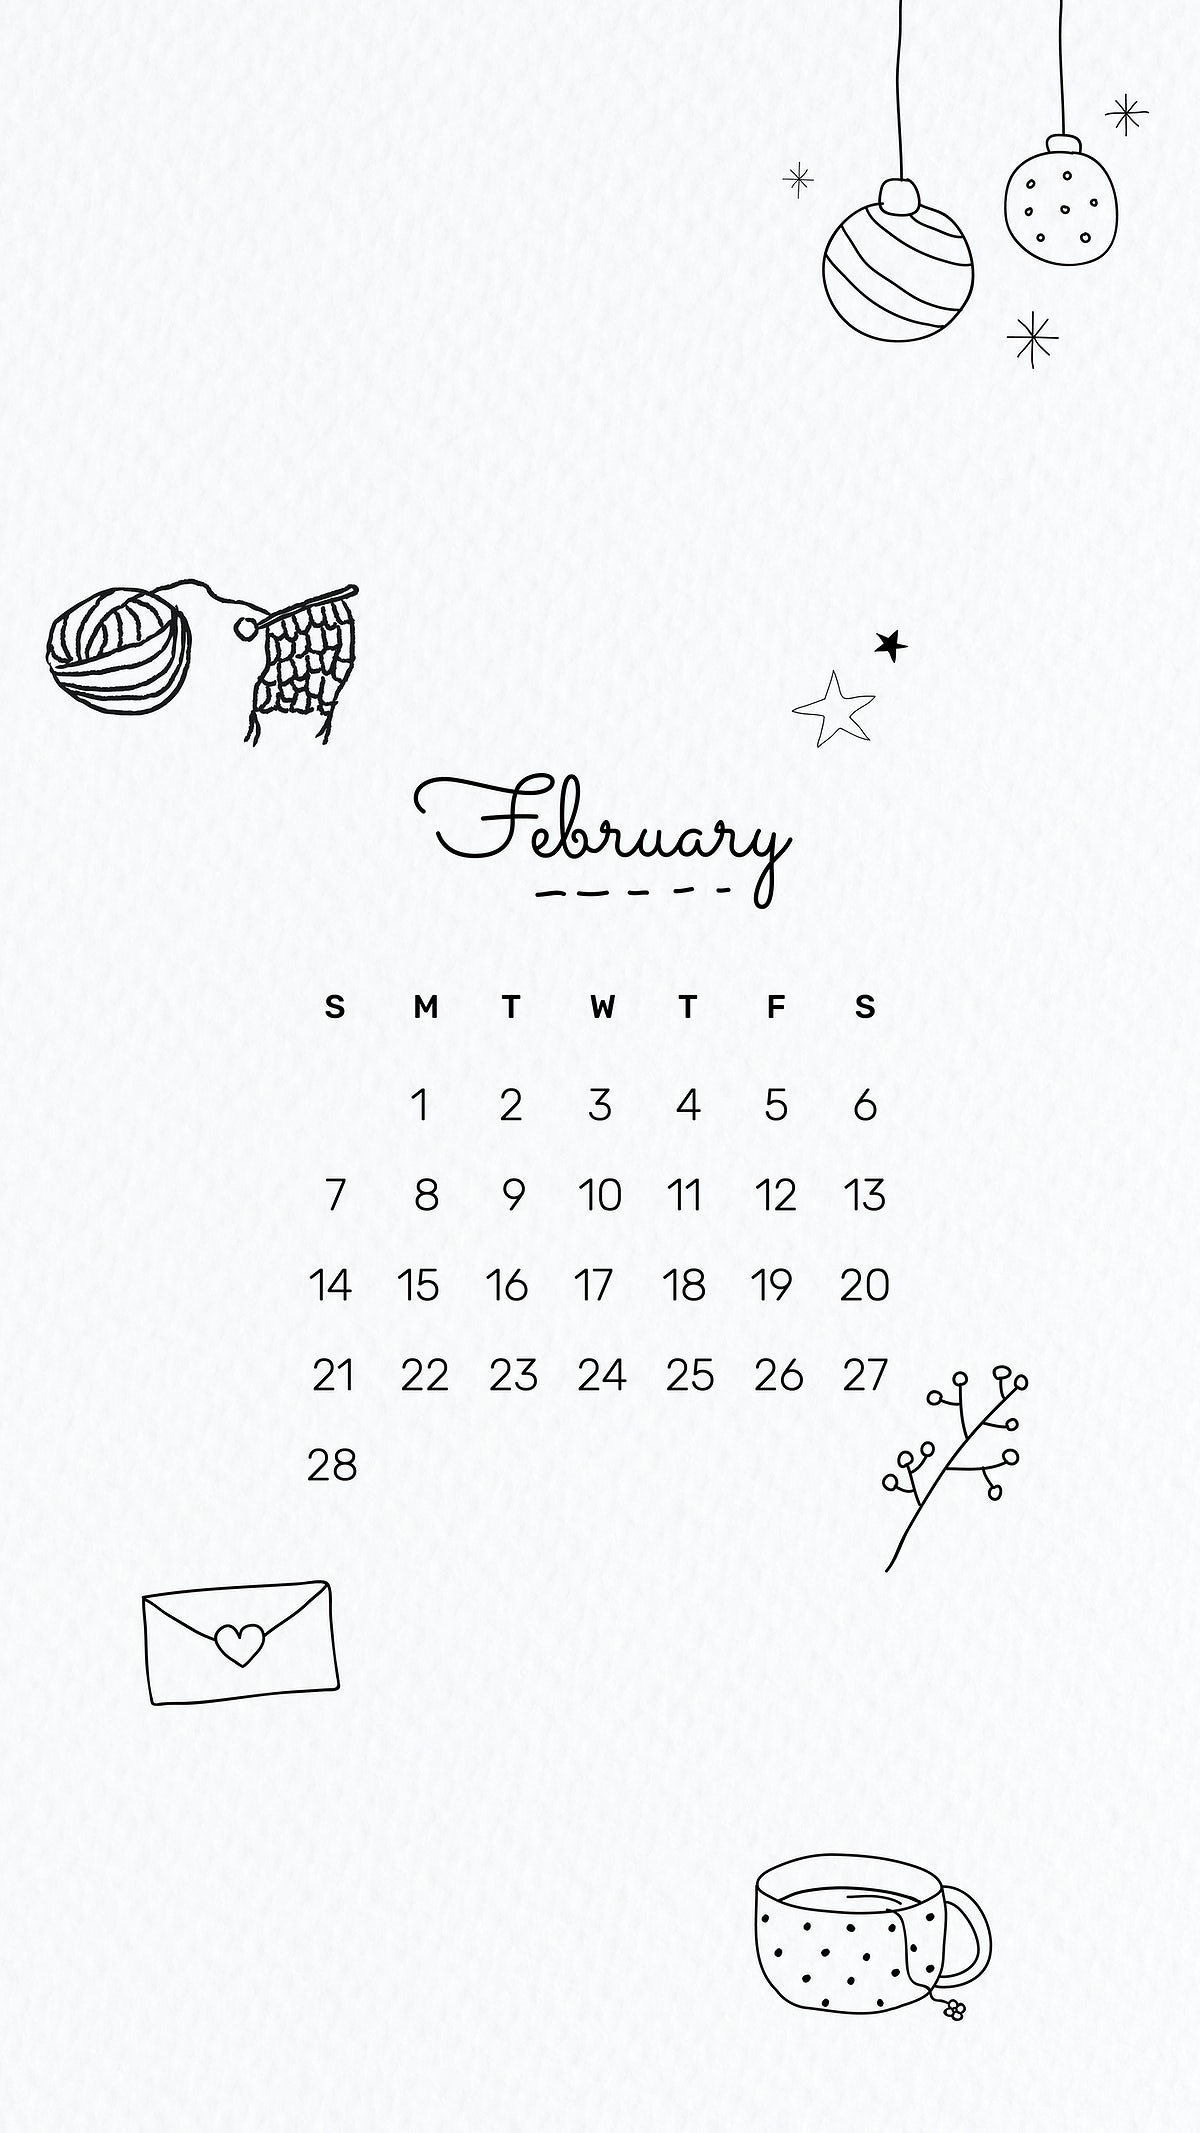 February 2021 mobile wallpaper vector template cute doodle drawing